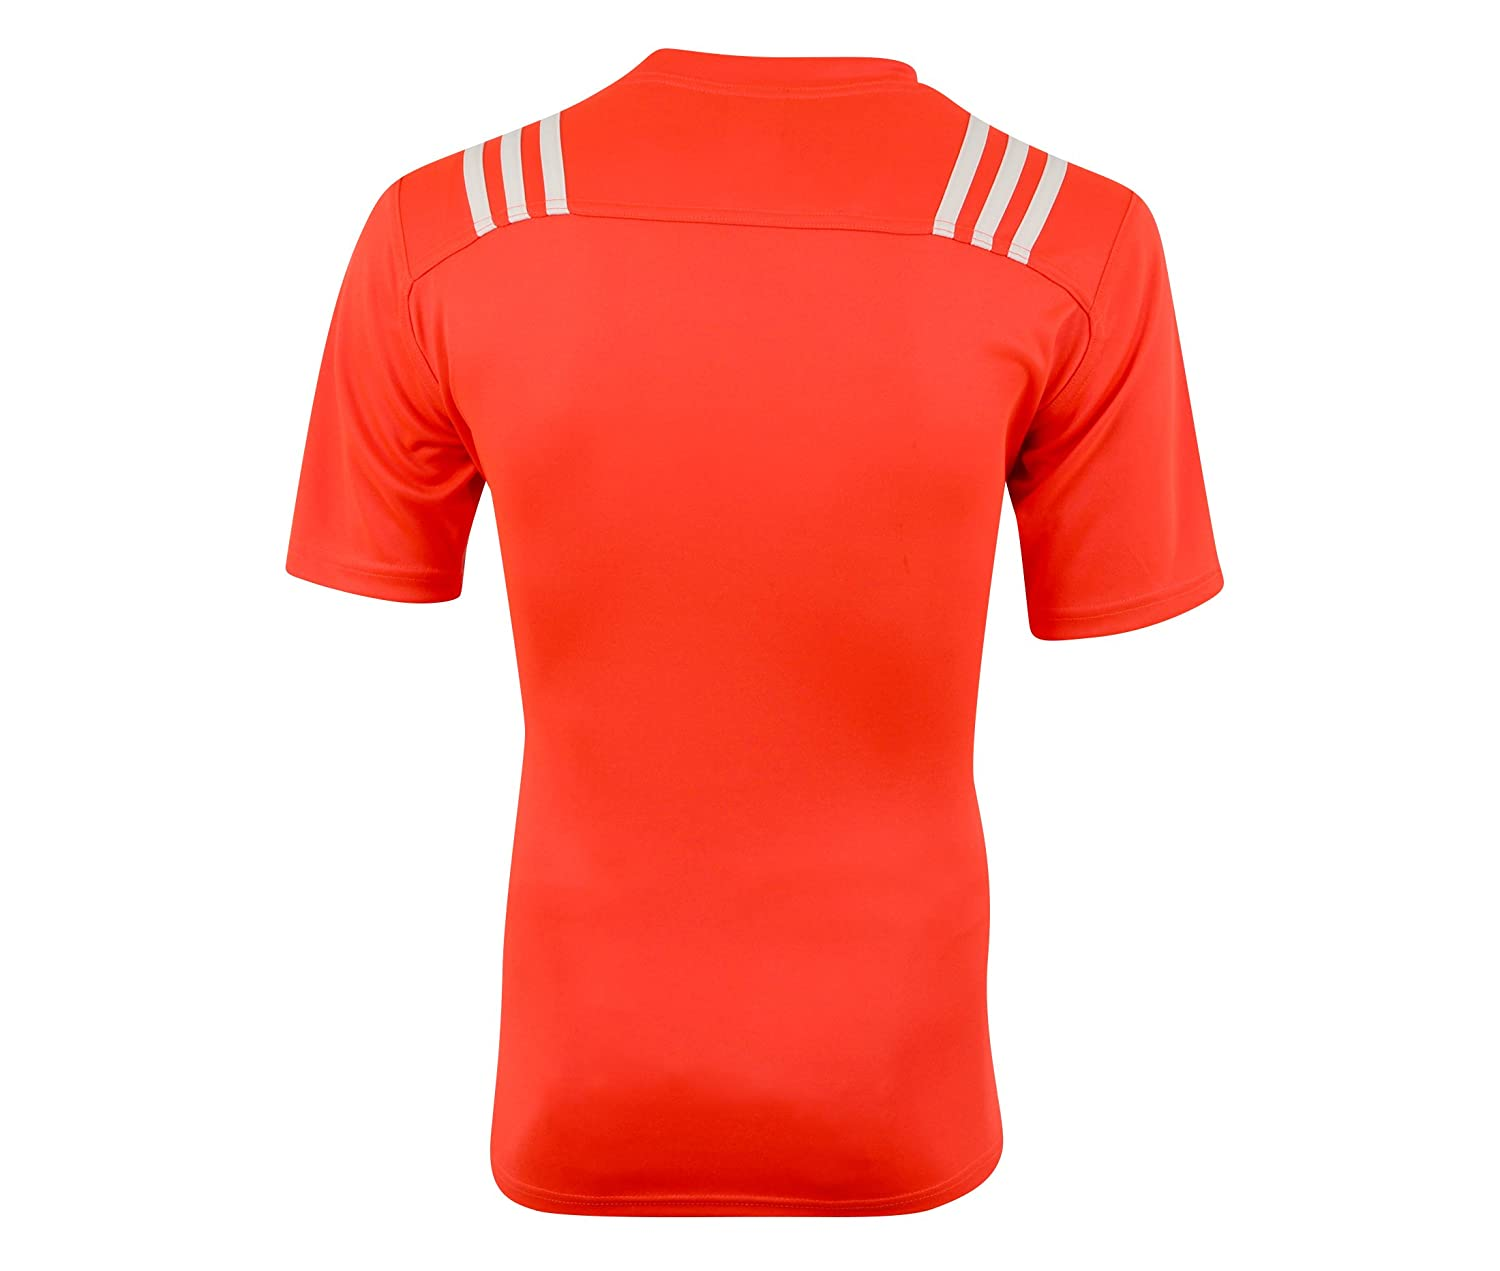 dff5c690b adidas France 2015 16 S S Rugby Training Shirt - All Sizes Available  rrp£55  Amazon.co.uk  Clothing